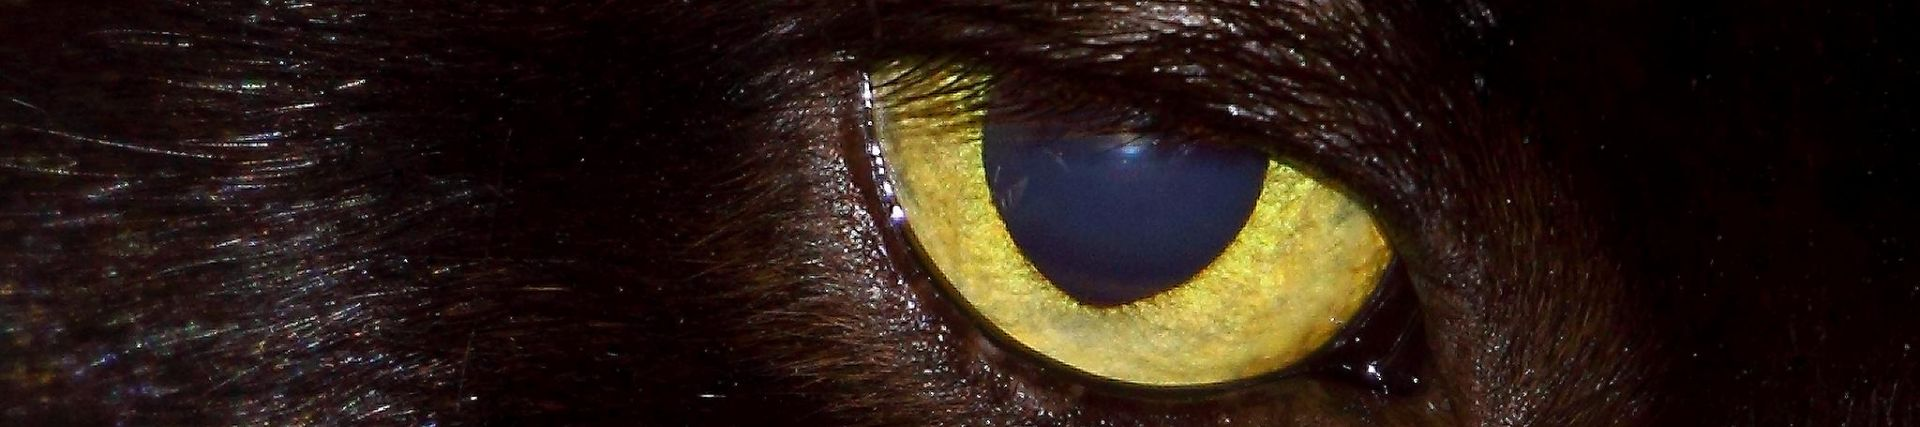 Image of a cat's eye